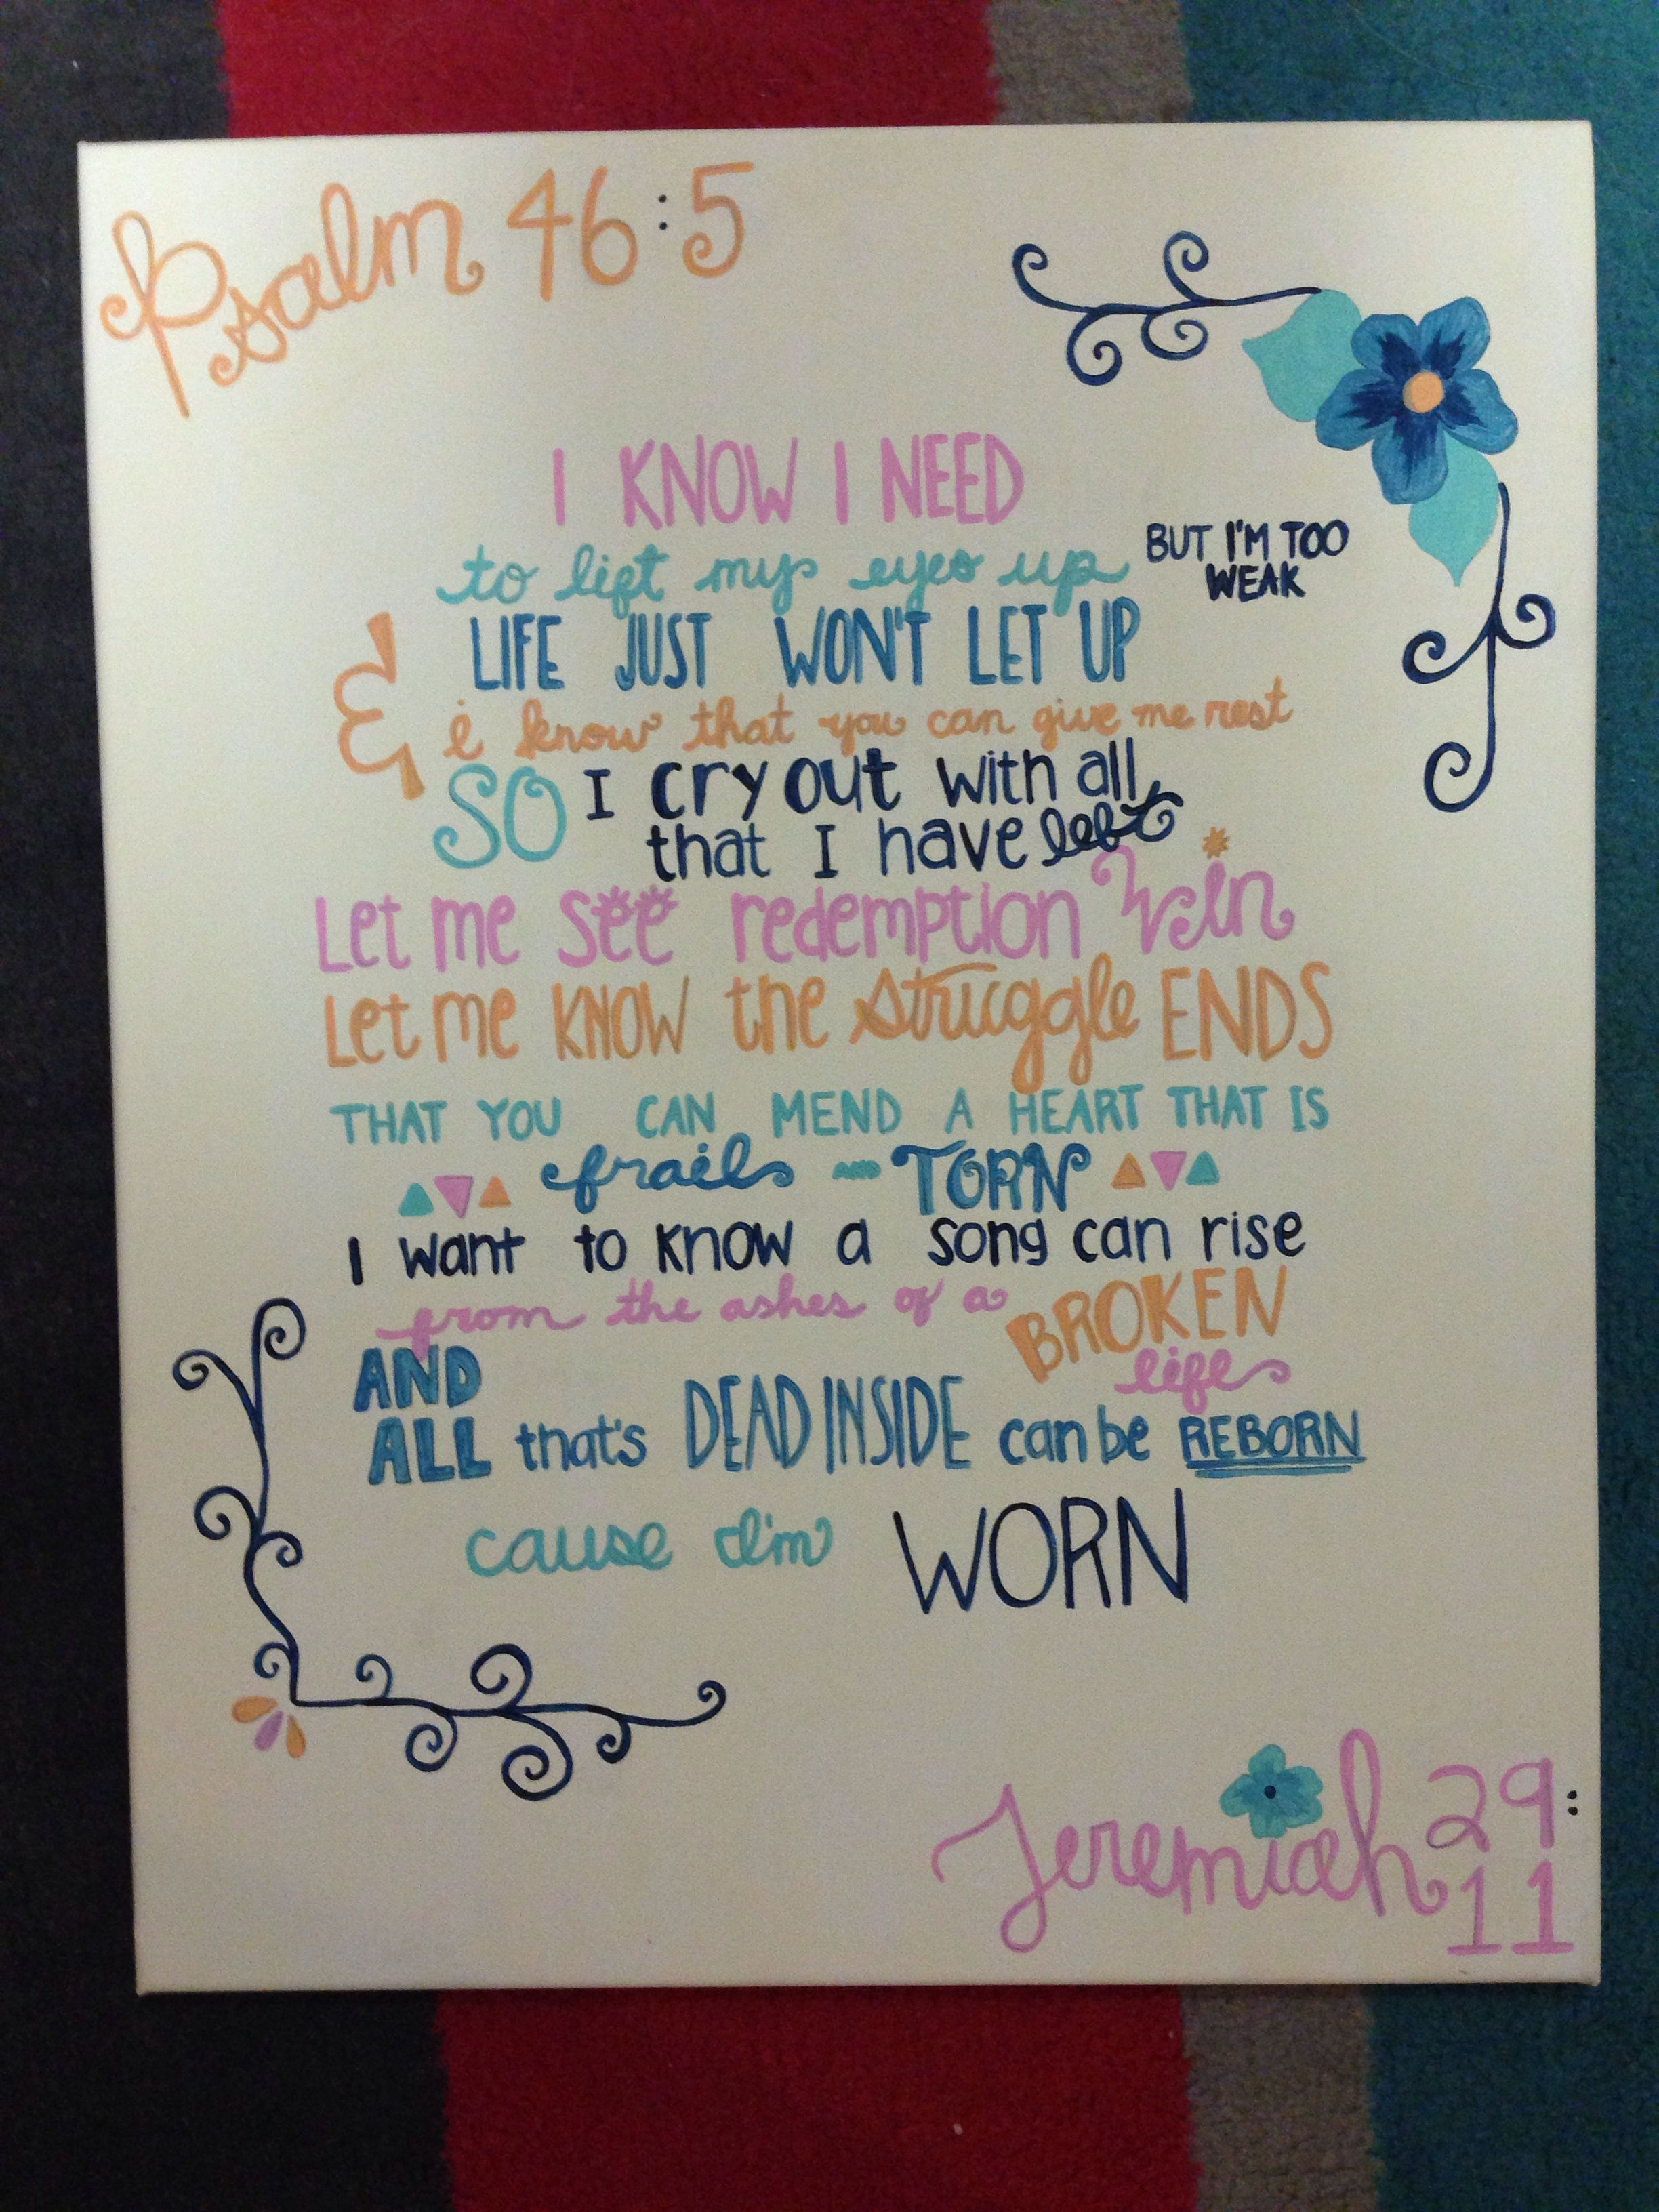 Cute Canvas Tenth Avenue Lyrics With Bible References And Pretty